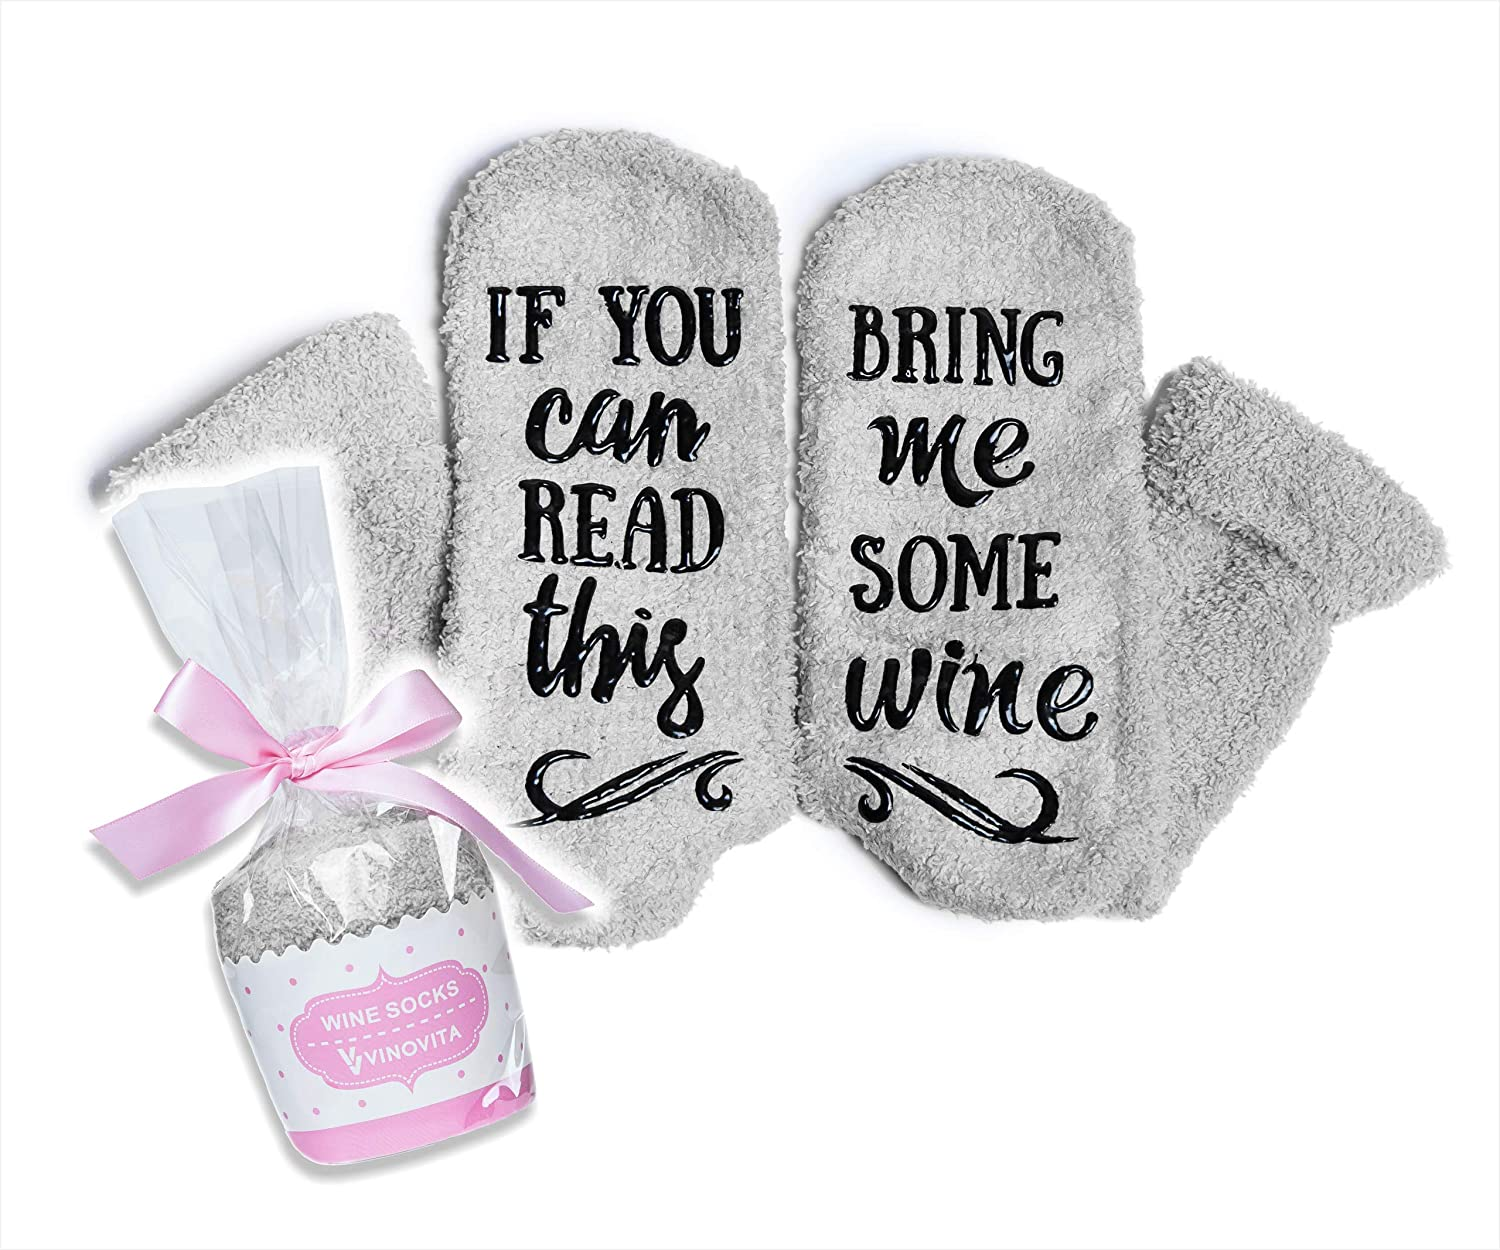 "VINOVITA Funny Wine Socks""If You Can Read This, Bring Me Some Wine"""